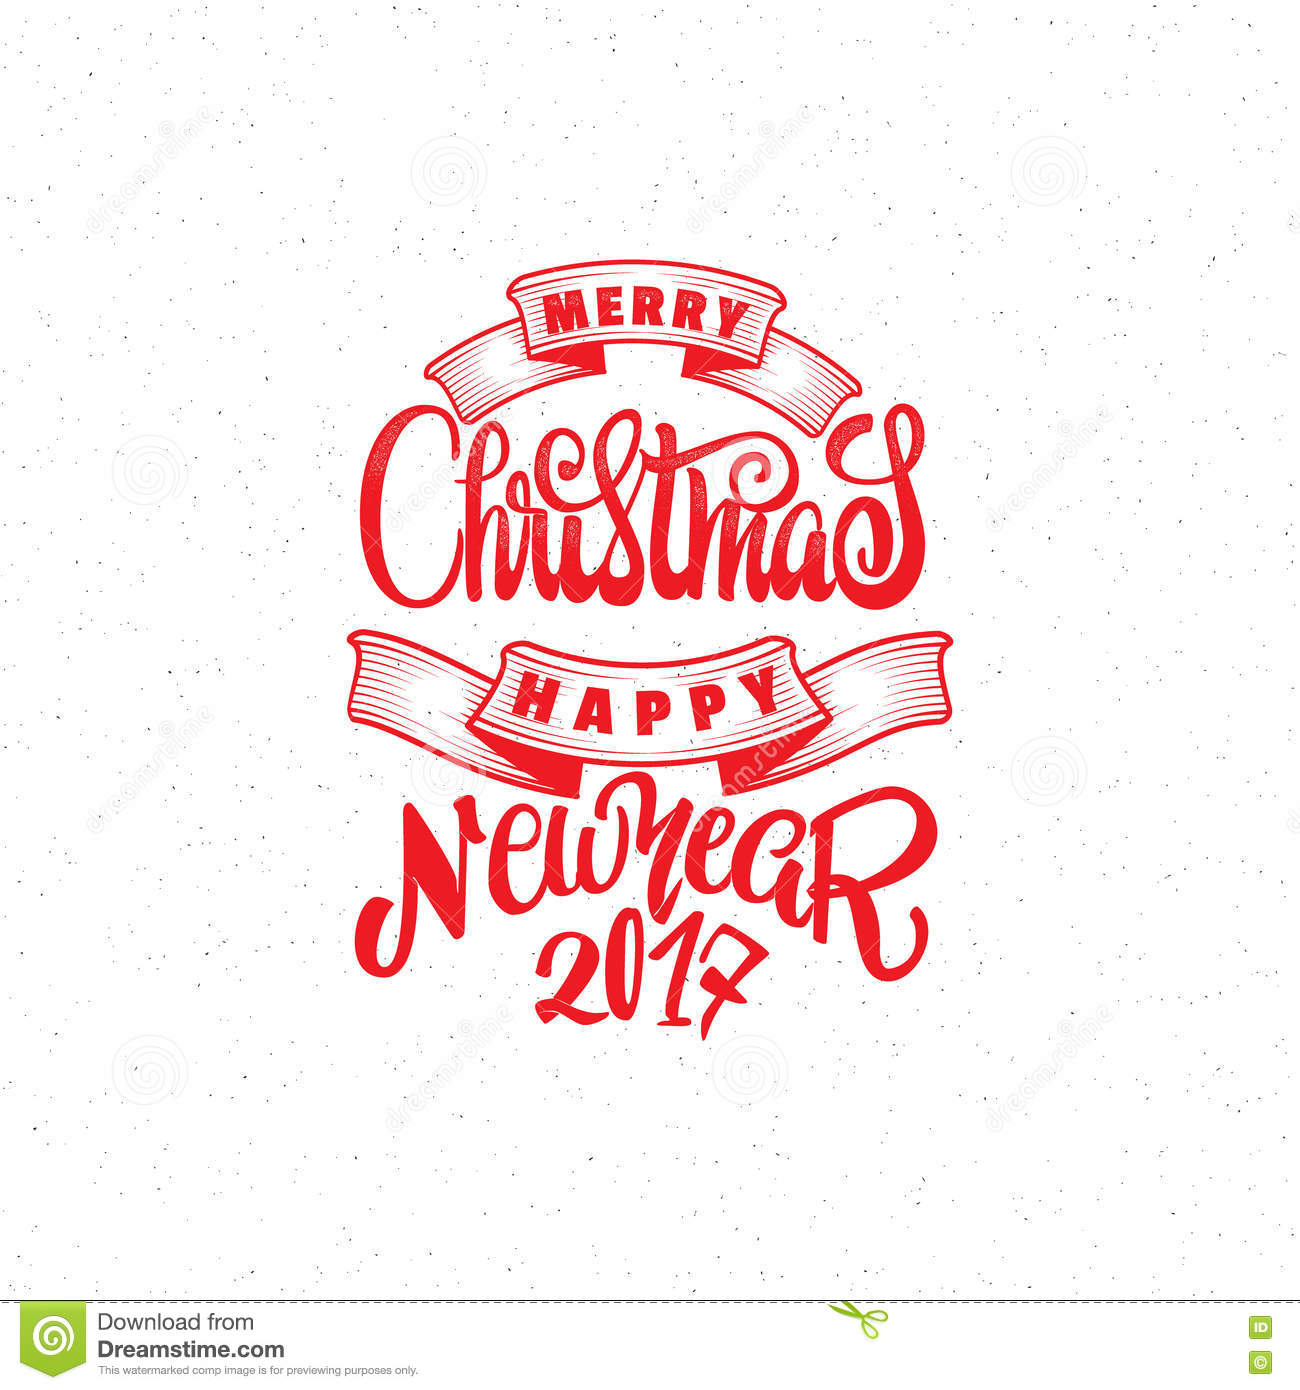 merry christmas and happy new year 2017 hand lettering text handmade vector calligraphy for your design